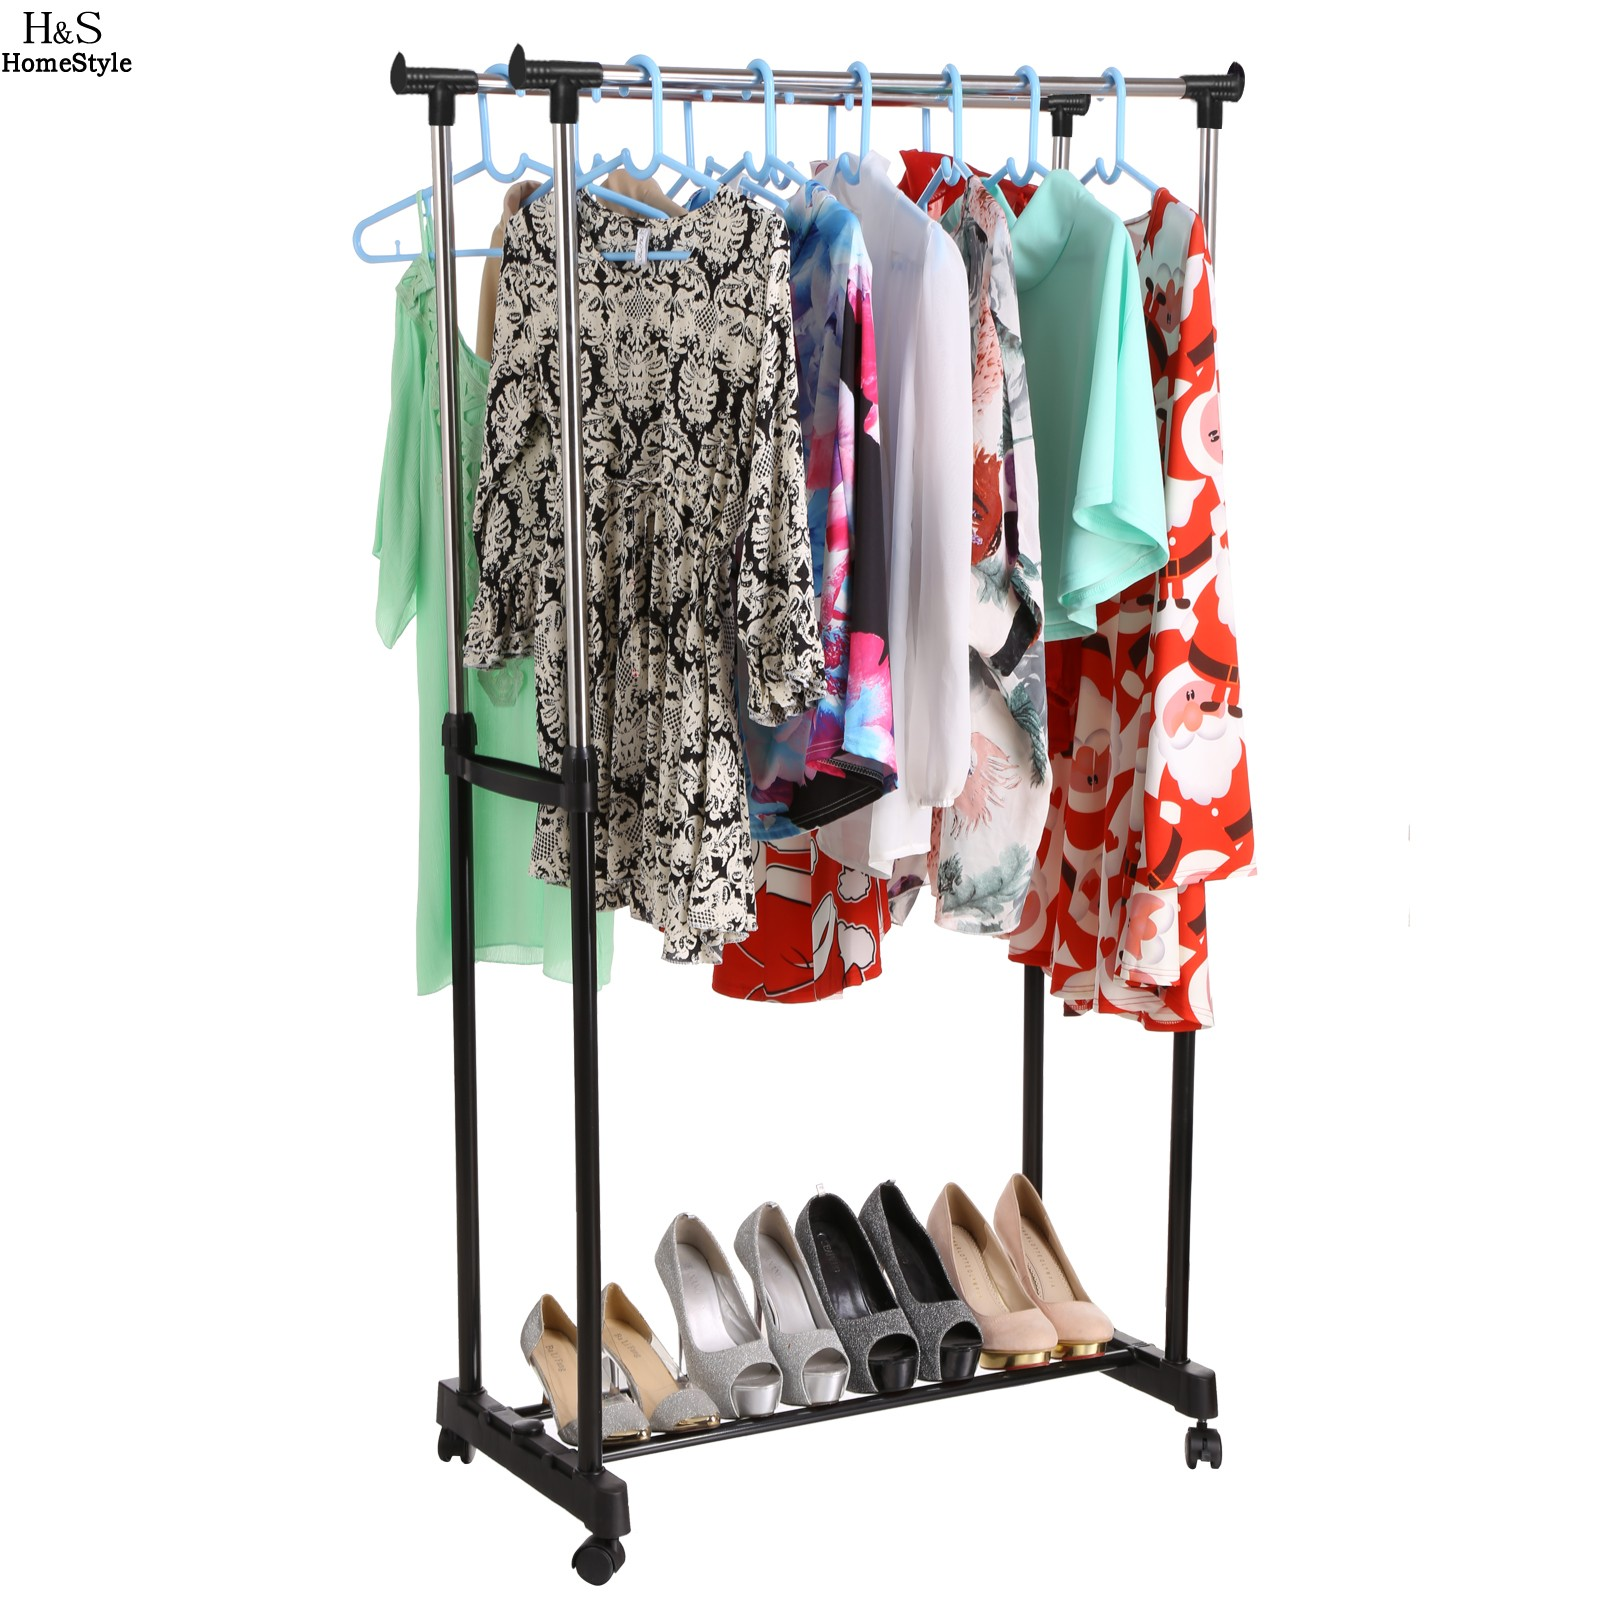 innovative no ideas b storage clothes have organization hanging blog you rack closet when